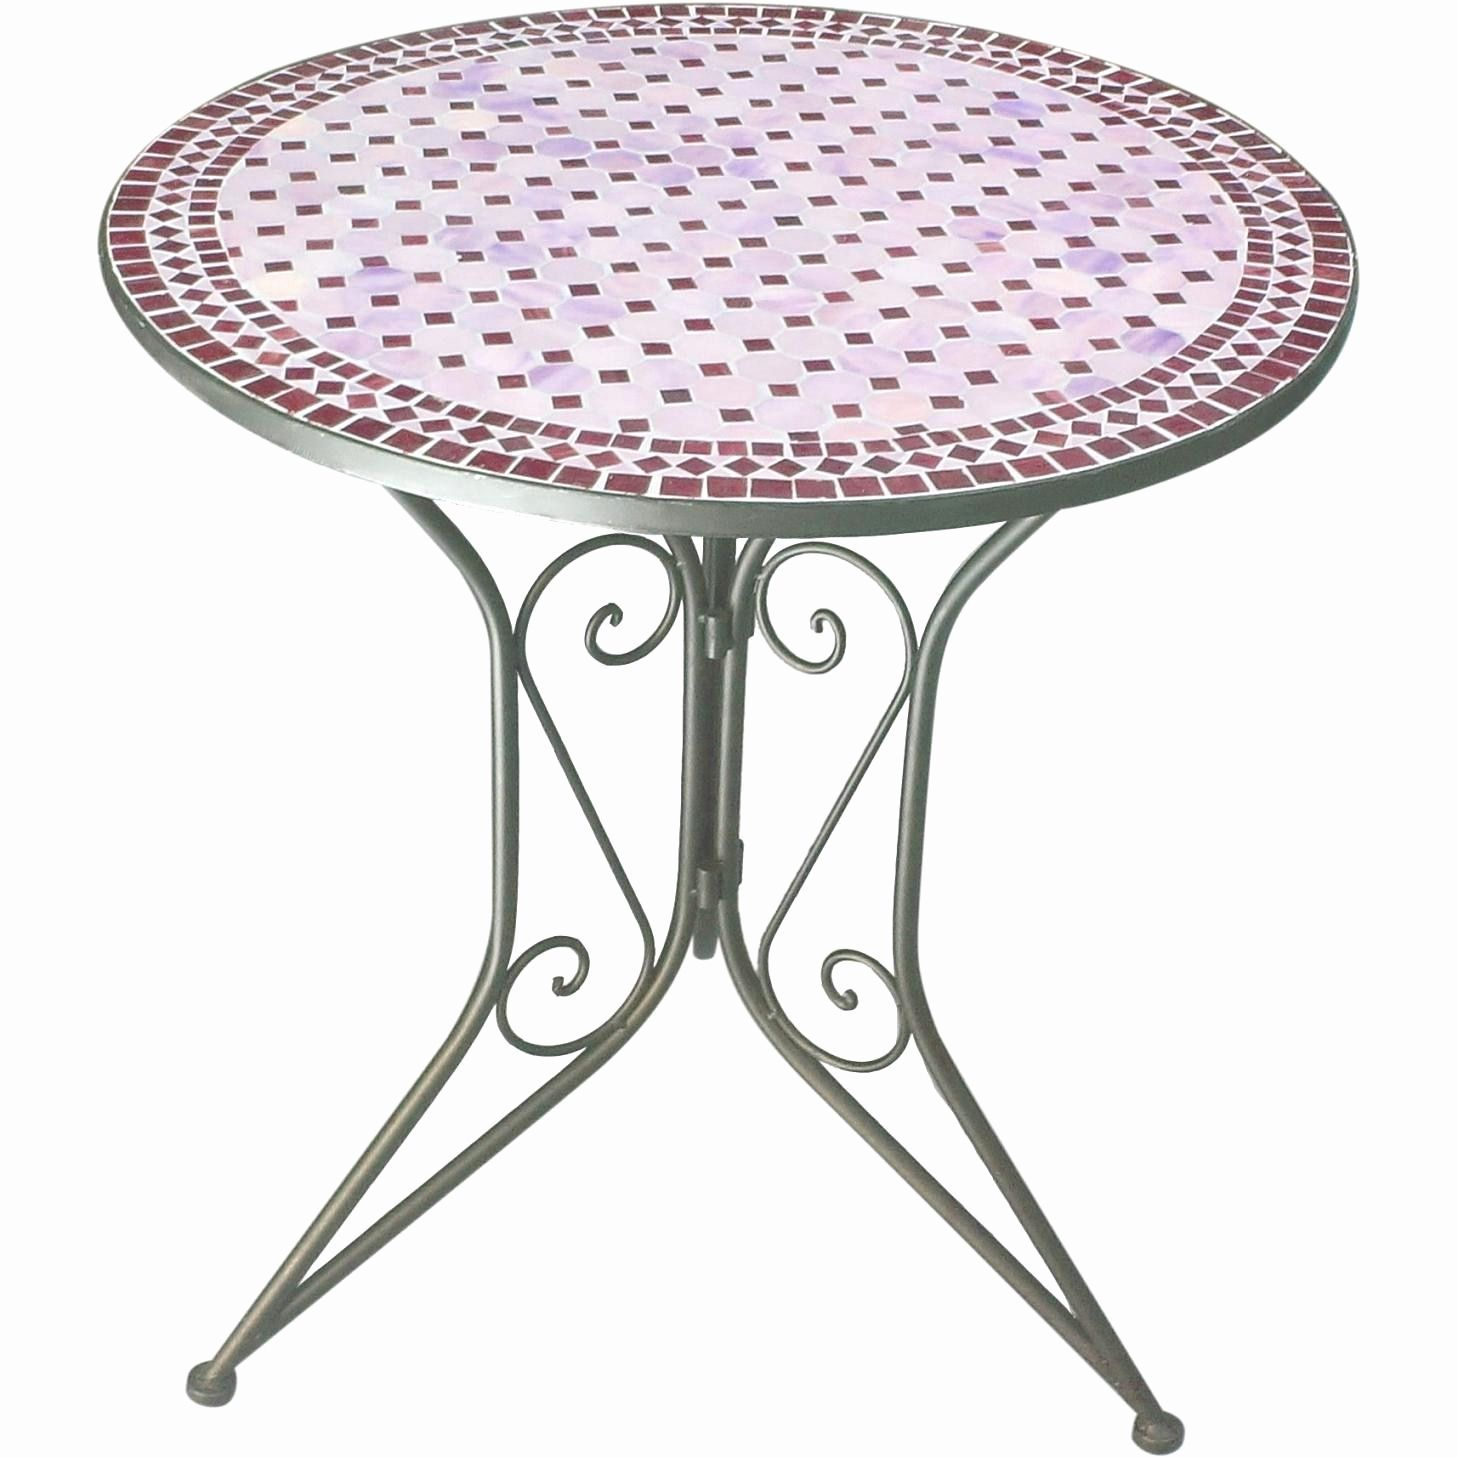 Conception Jardin Inspirant Table De Jardin Ronde Inspirant Table De Jardin Ceramique Of 49 Luxe Conception Jardin